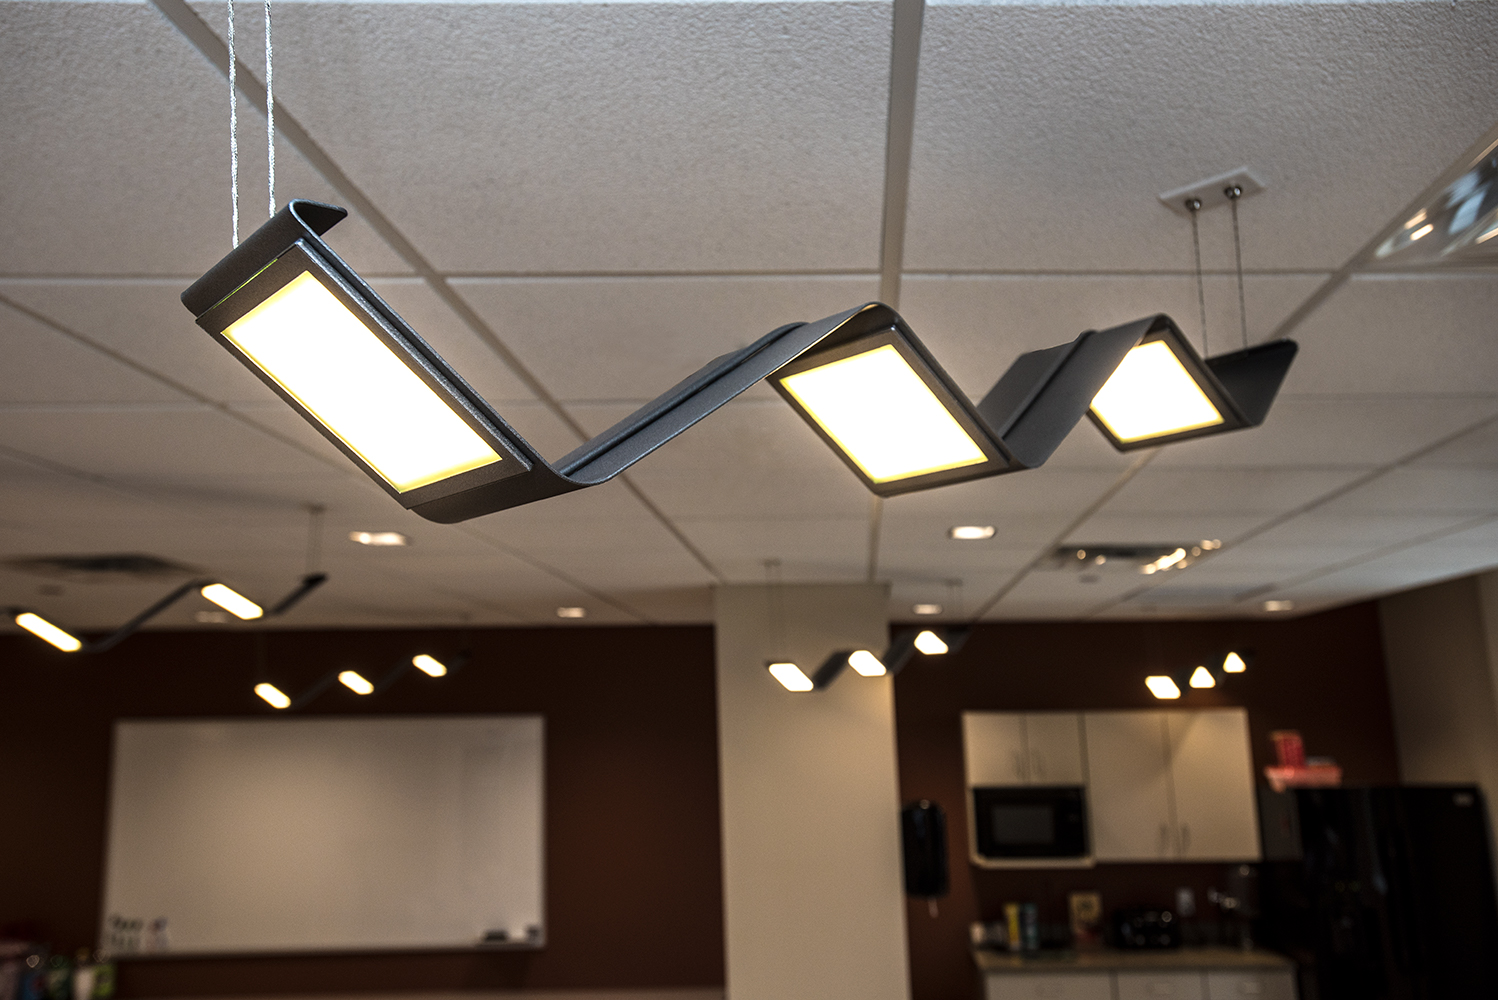 Limit pendants in a modern office lighting design.